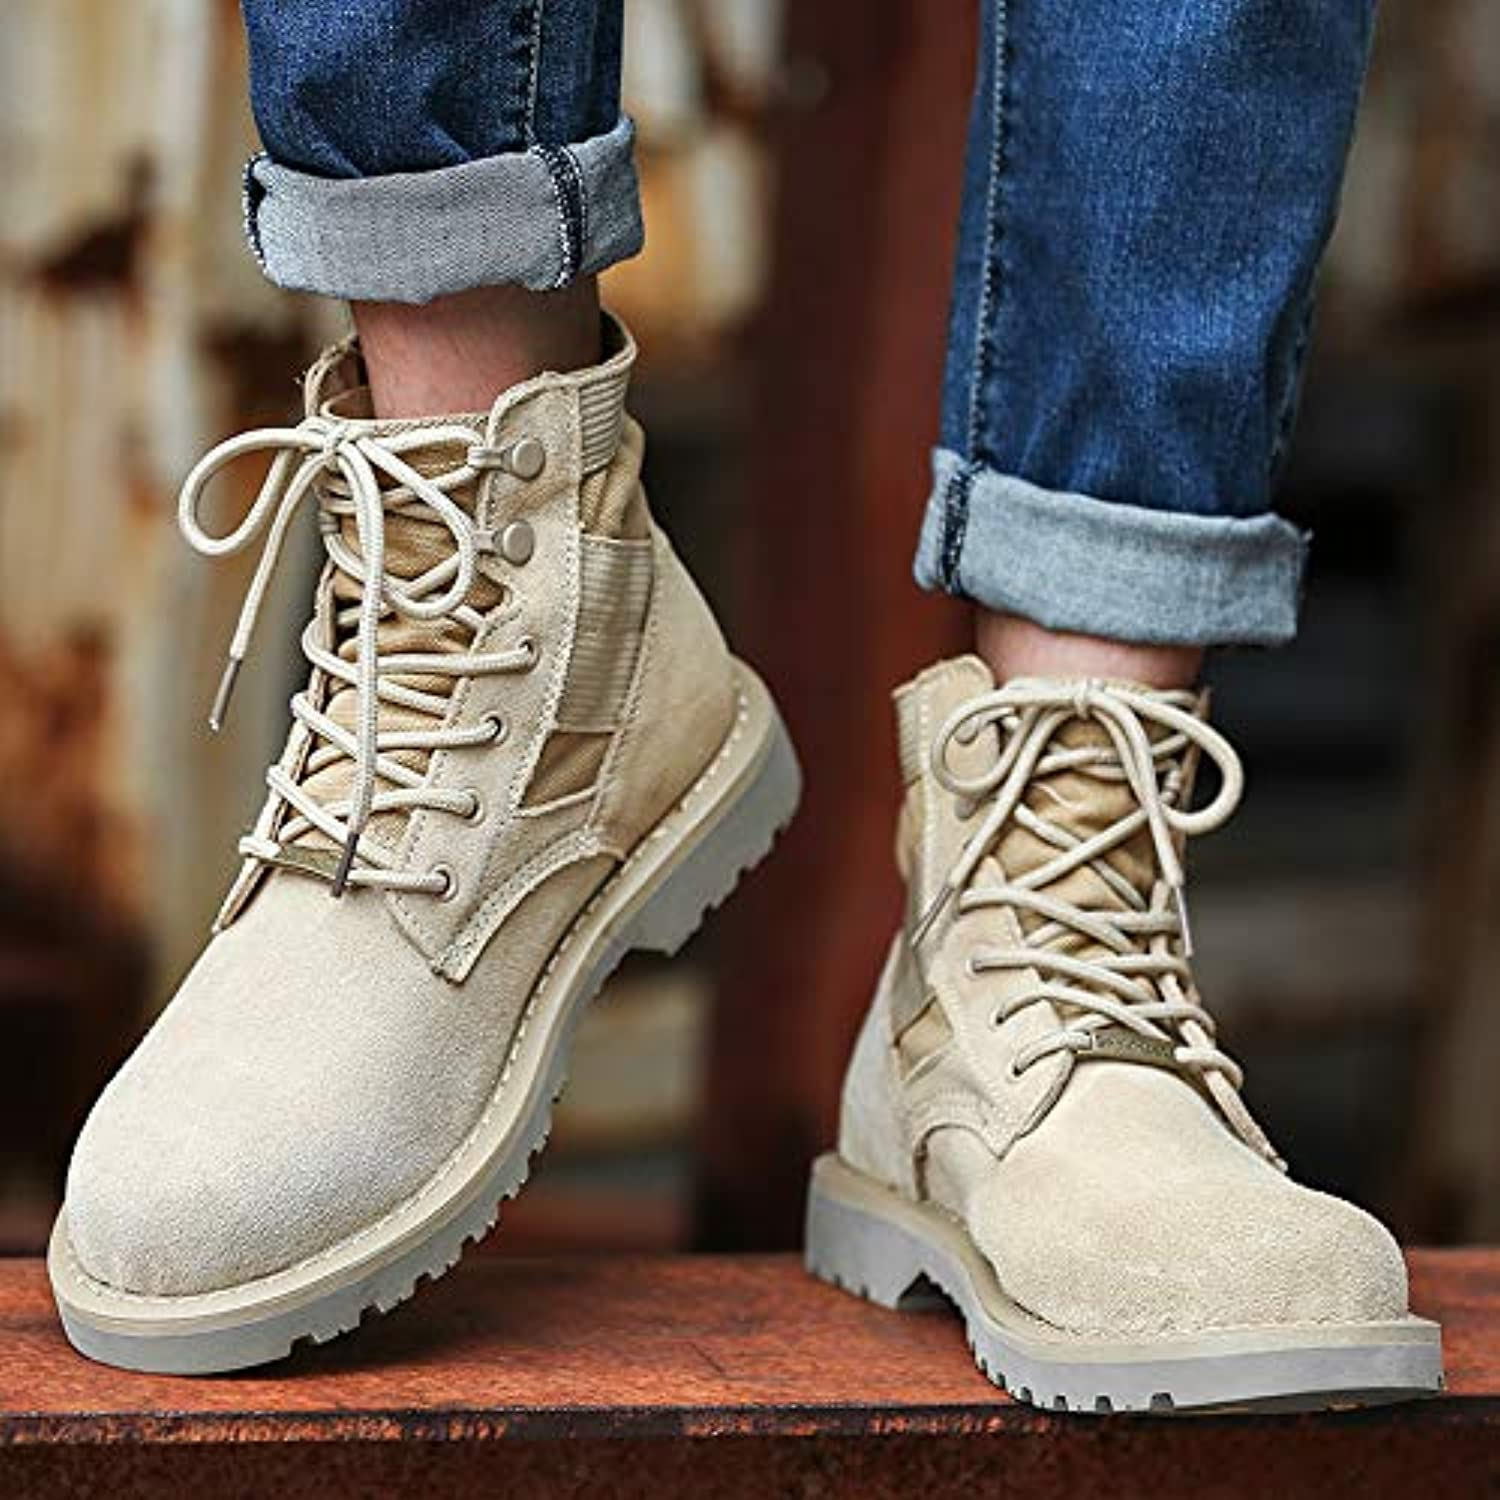 LOVDRAM Boots Men's Army Boots Men'S Cotton Boots Scrub In The Tooling Boots High To Help Martin Boots Pu Desert Boots Winter